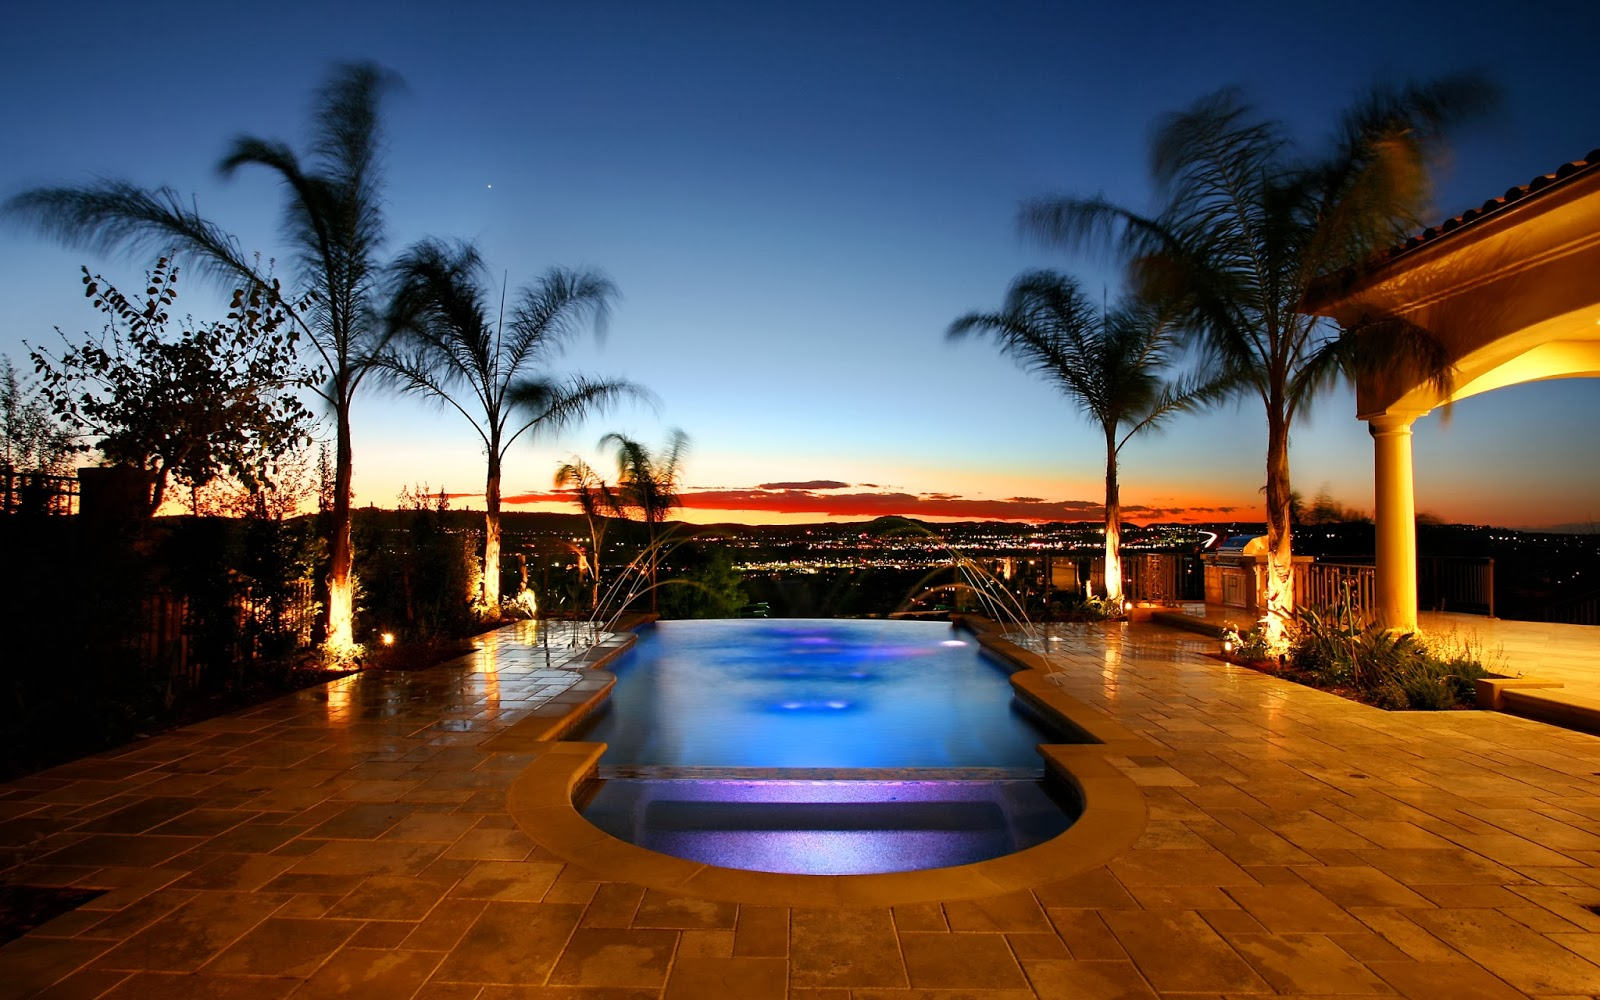 Home Wallpaper Life: Picture Collection: Luxury Pool Resort Romantic Landscape